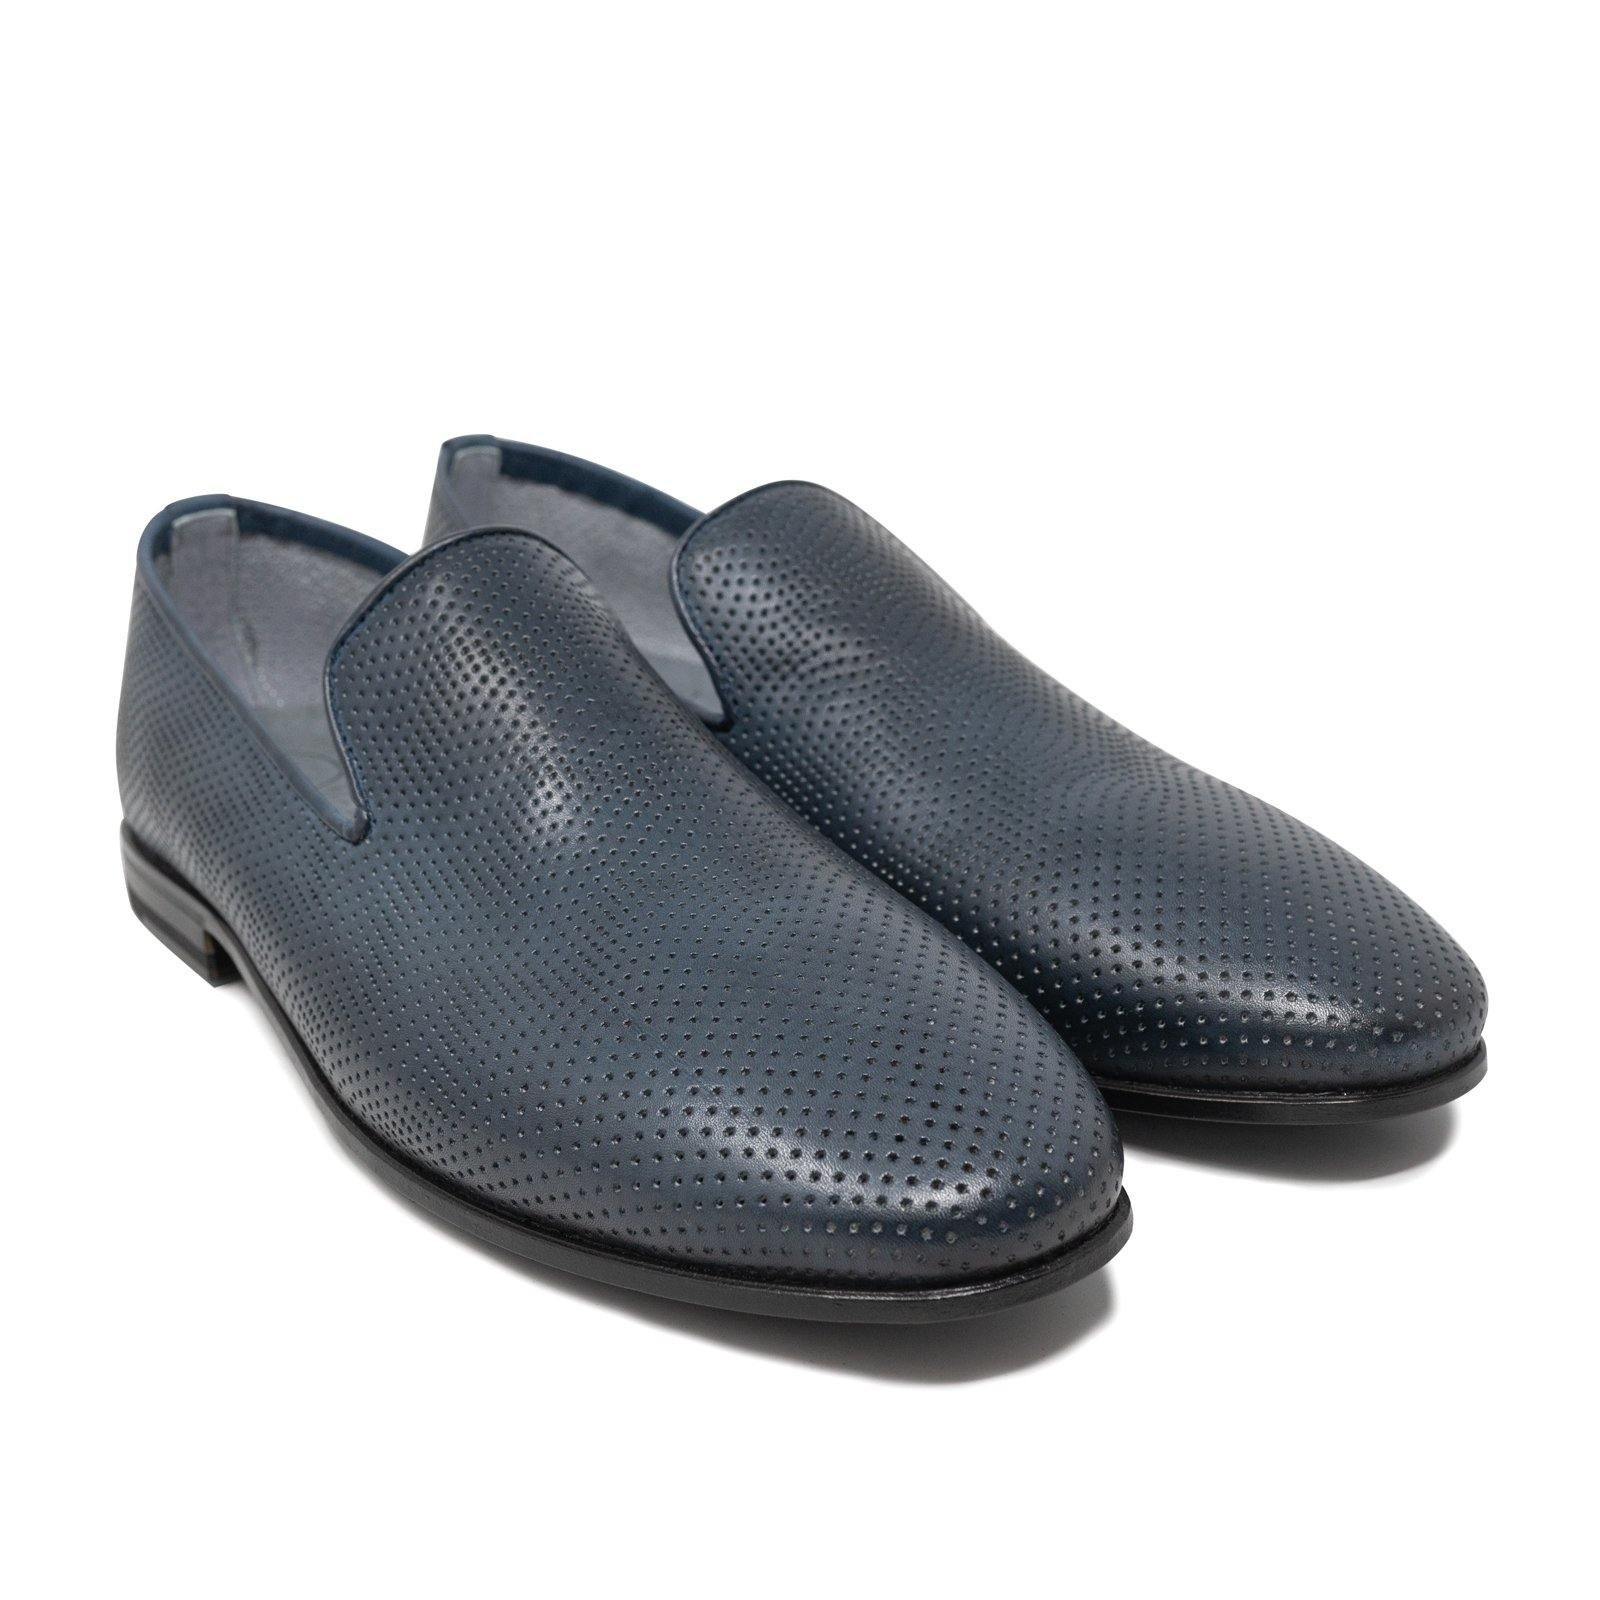 Men Slip On Leather Shoes in Dark Blue Perforated Nappa